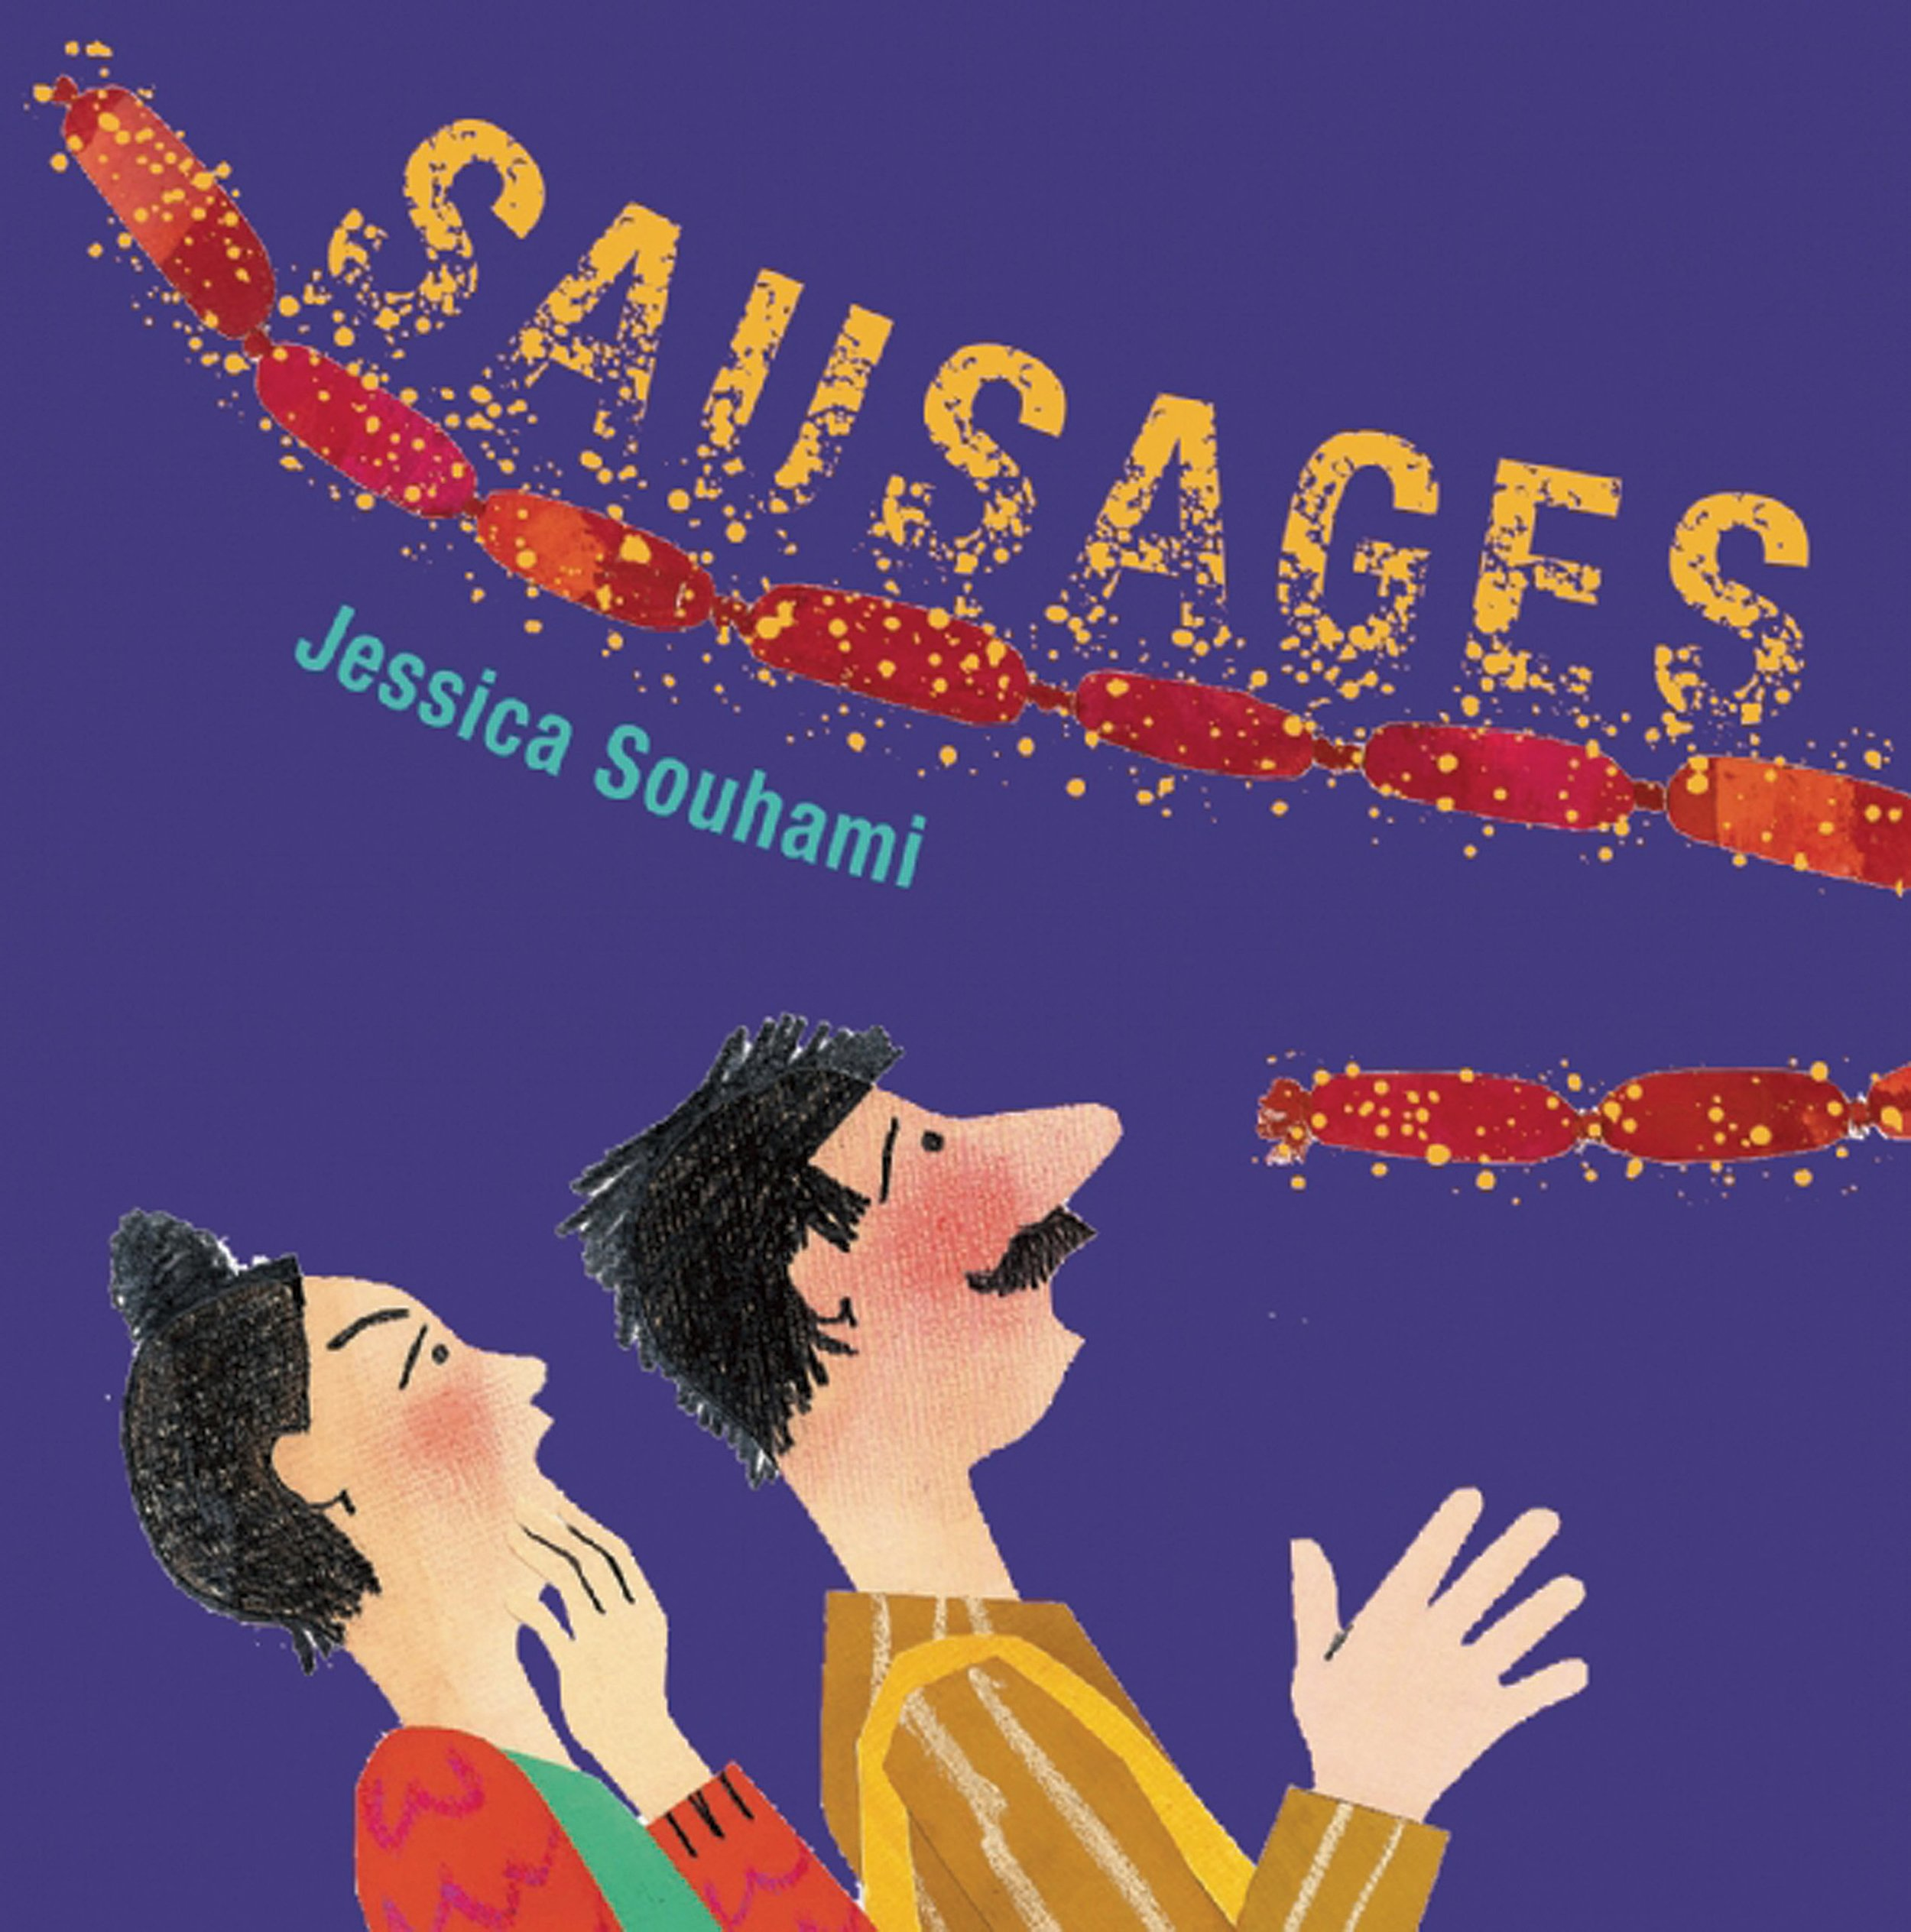 Sausages by Jessica Souhami.jpg